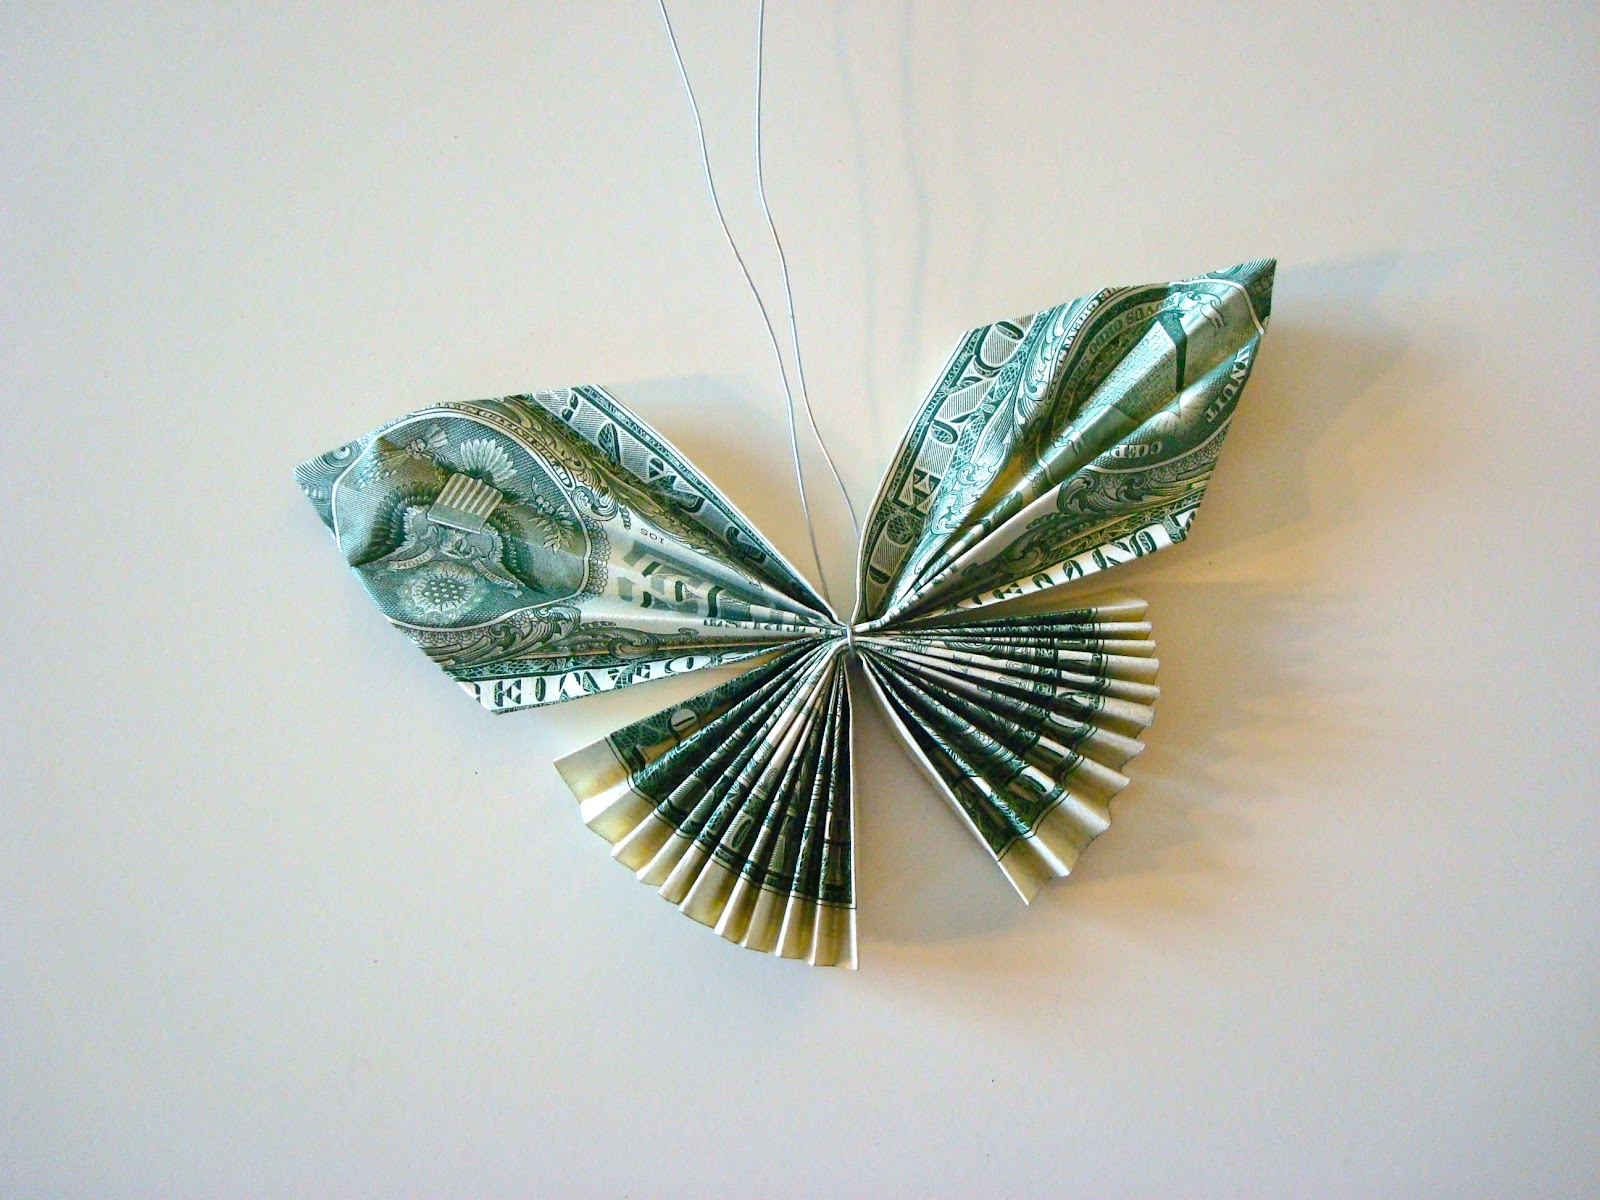 Once upon a pink moon tutorial how to make a candy lei with once upon a pink moon tutorial how to make a candy lei with dollar bill butterflies mightylinksfo